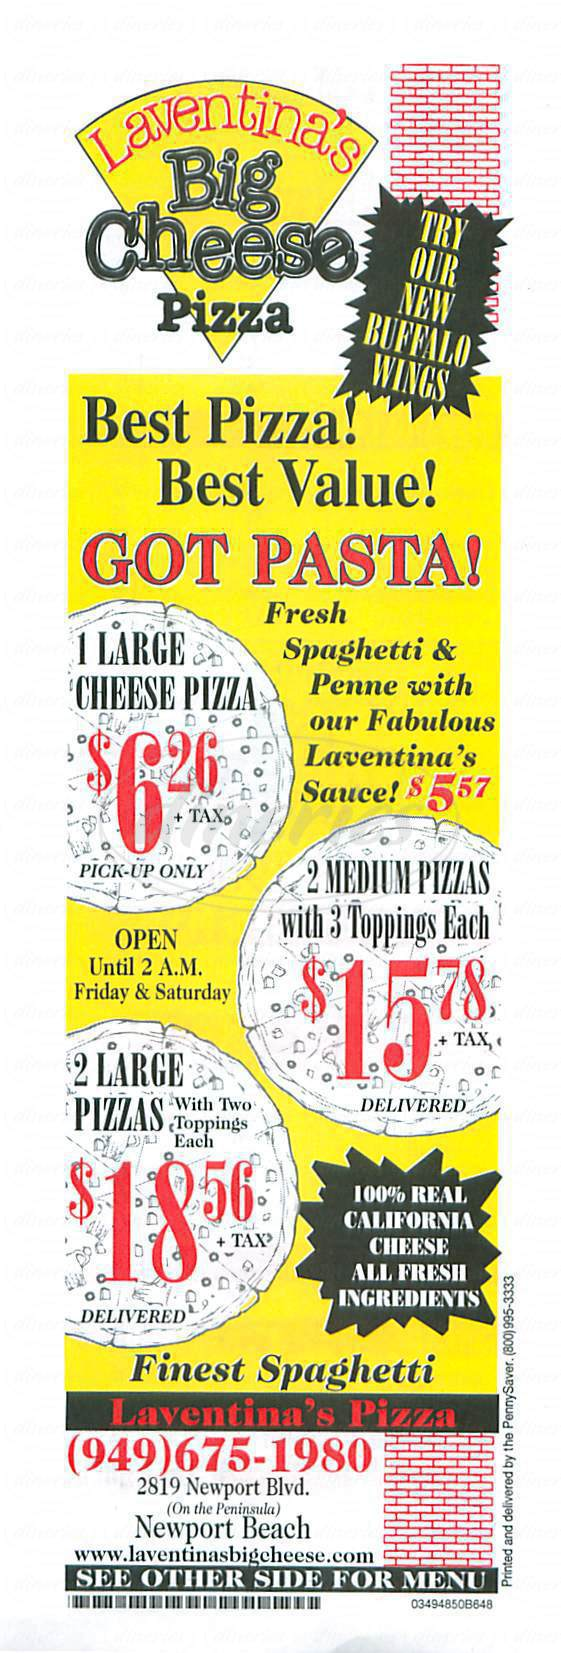 menu for Laventinas Big Cheese Pizza